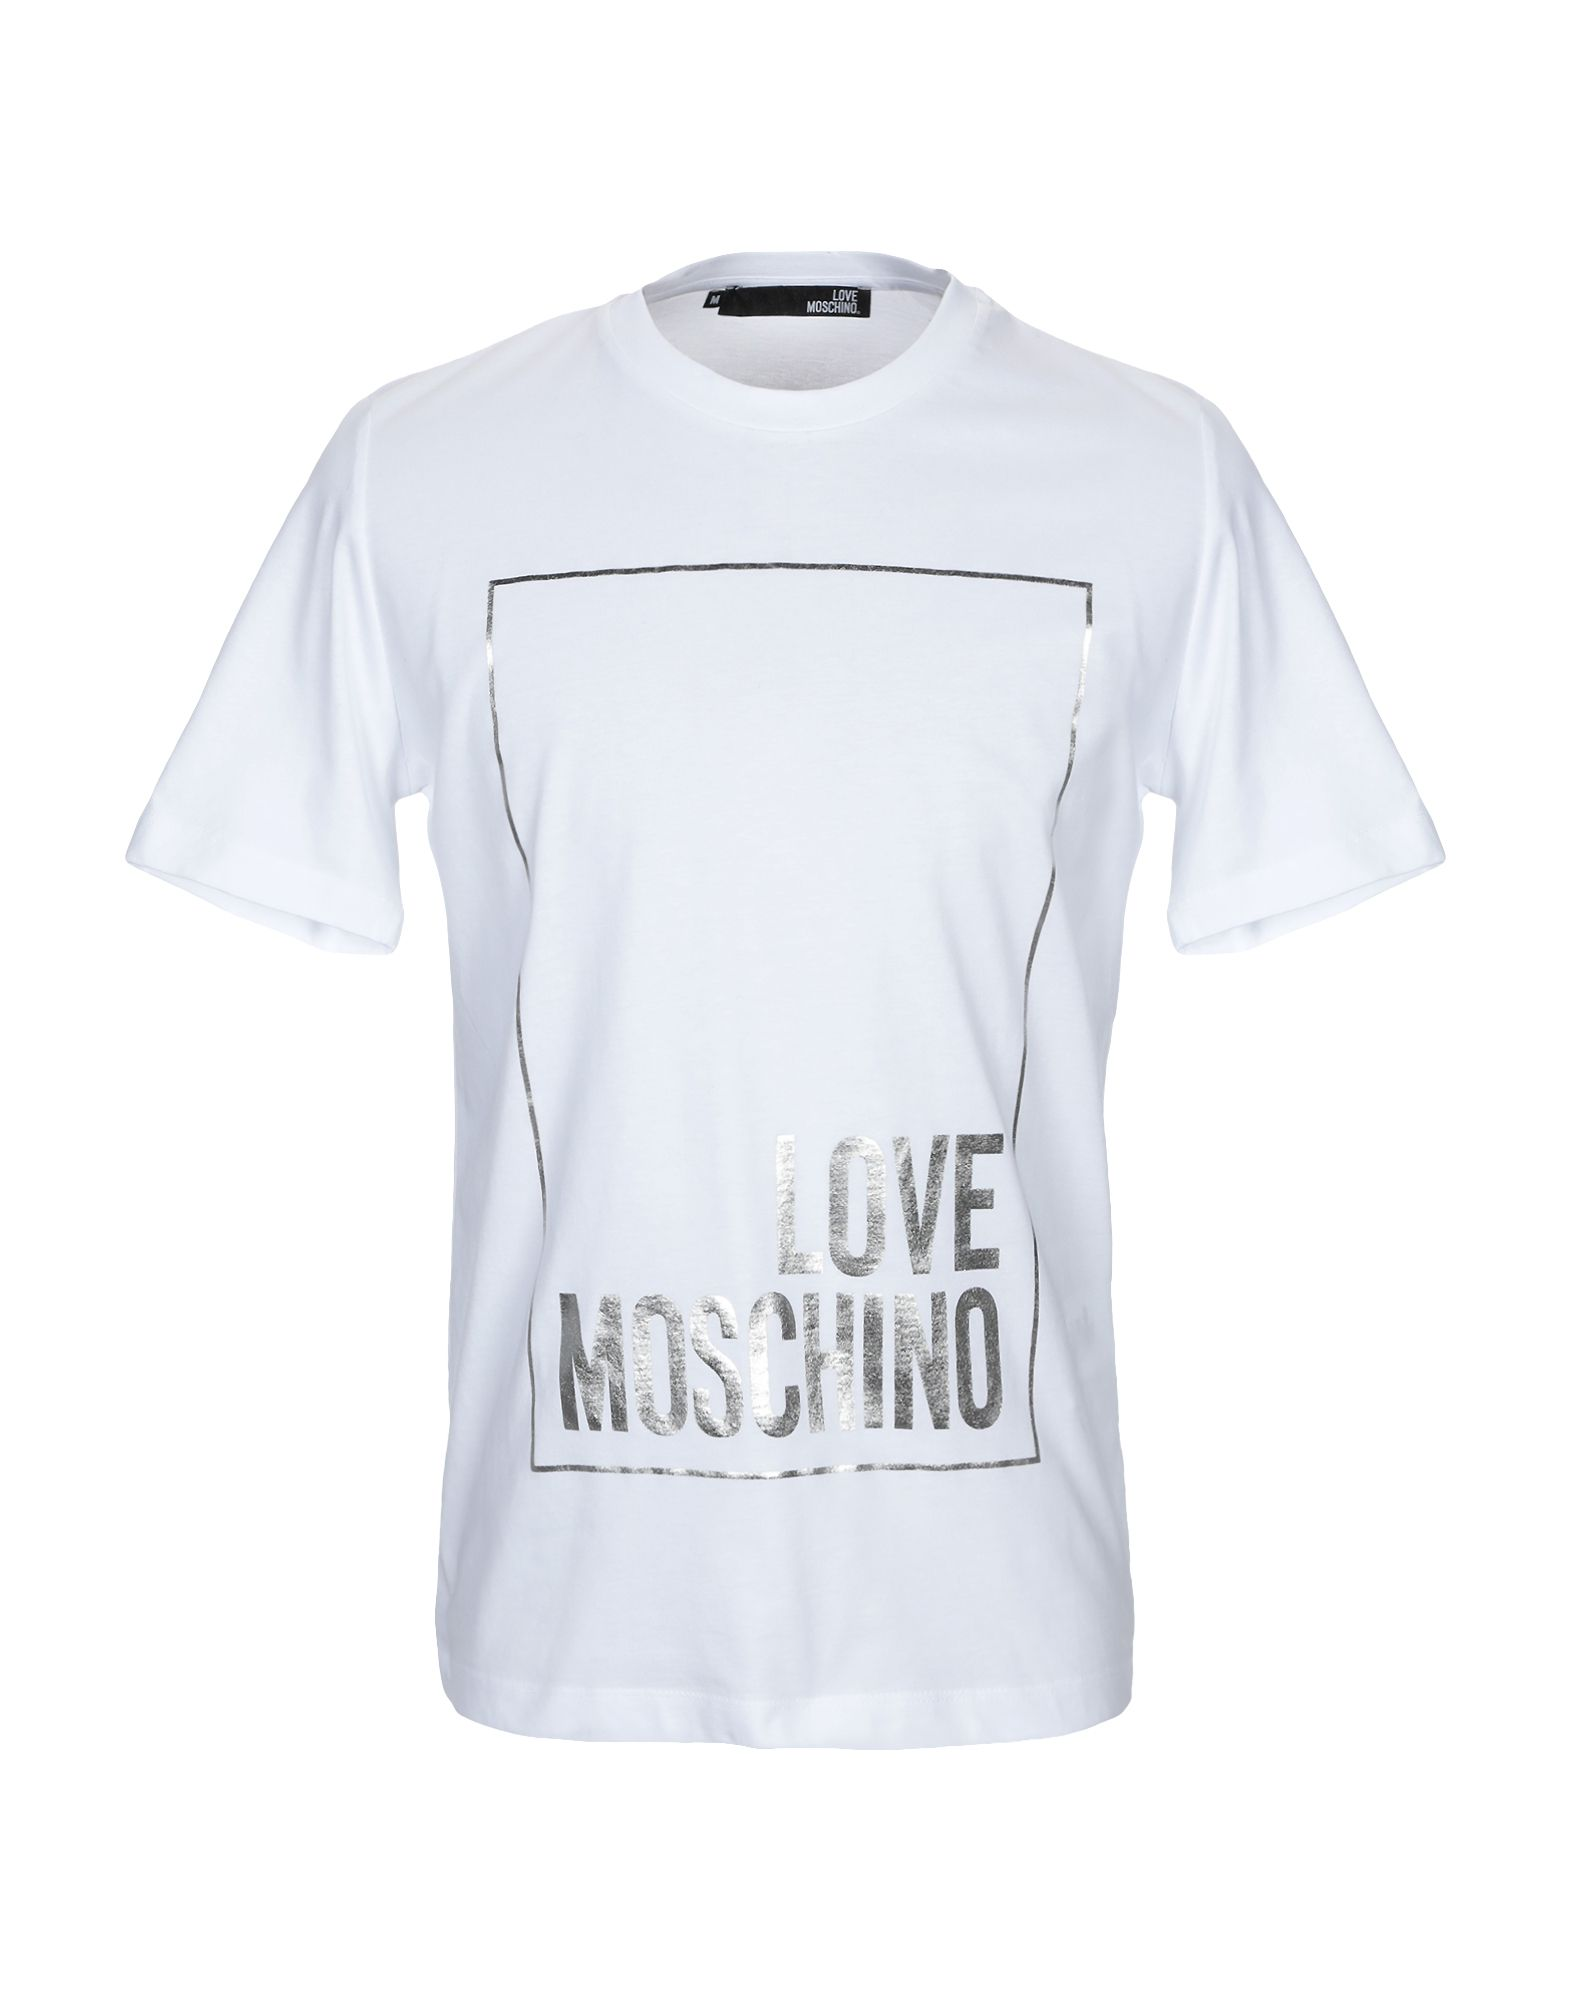 978a2135bd6f8 Love Moschino T-Shirt In White | ModeSens